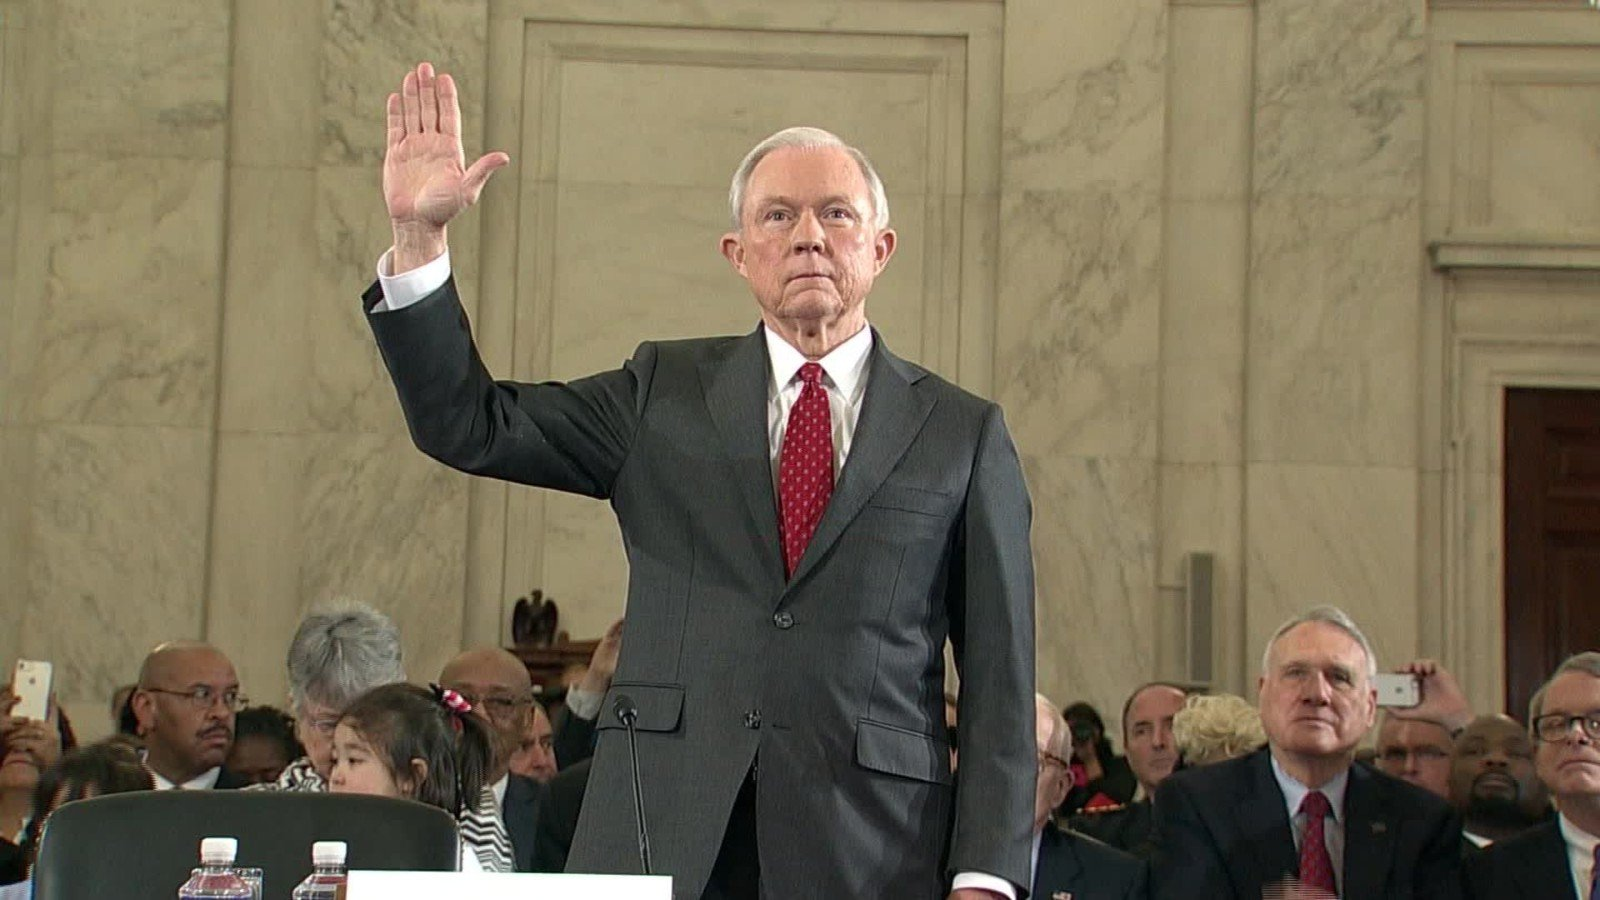 Sessions To Testify About Comey Before Senate Intelligence Committee – True Pundit